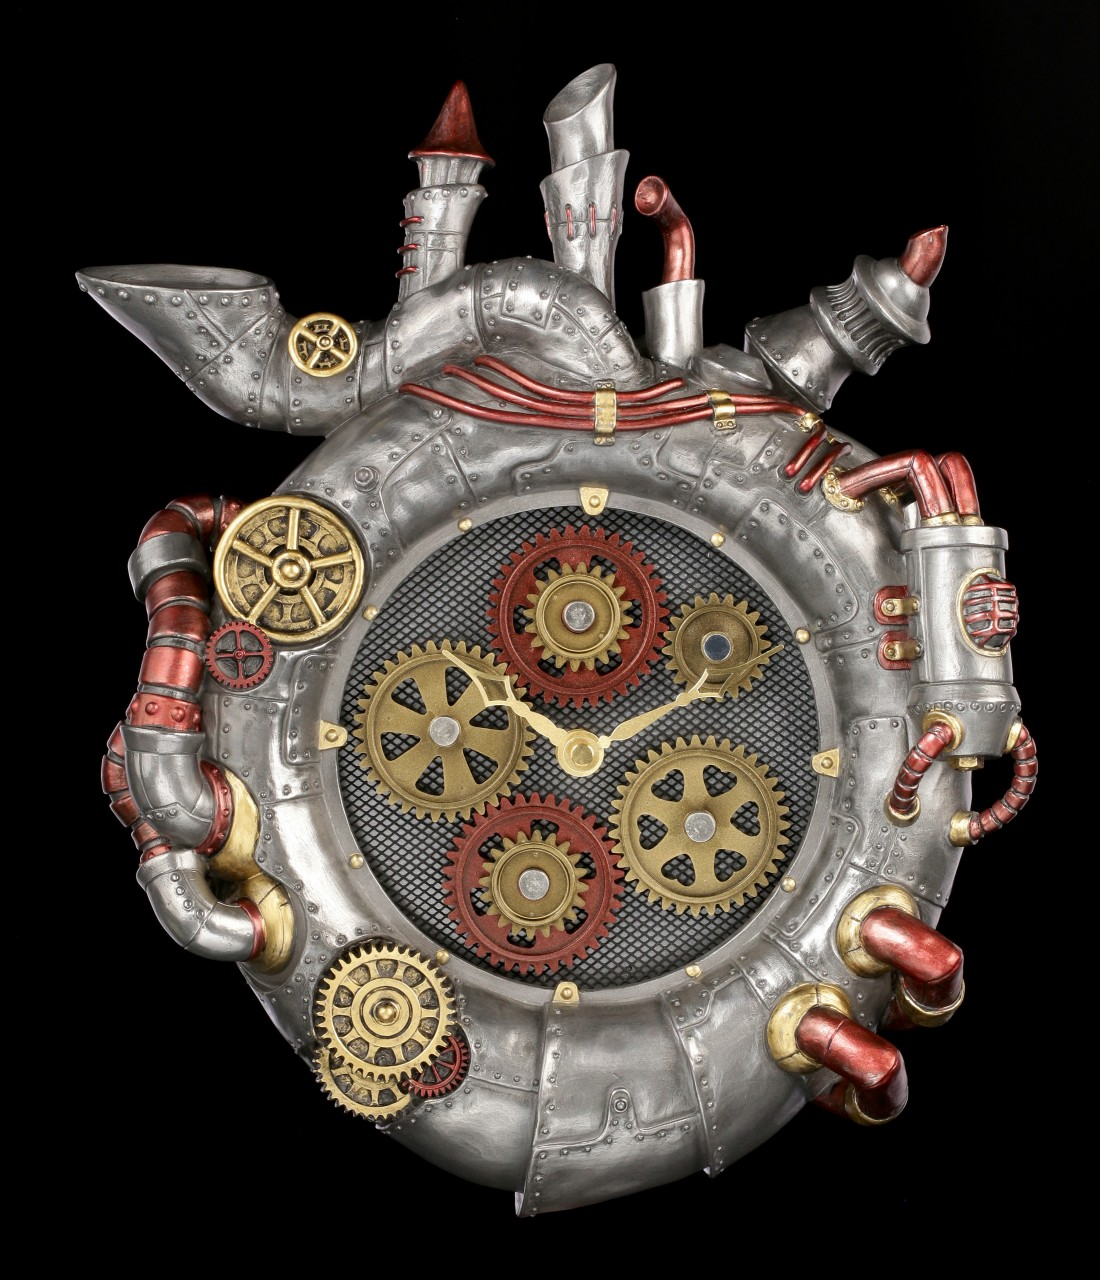 Steampunk Heart Wall Clock